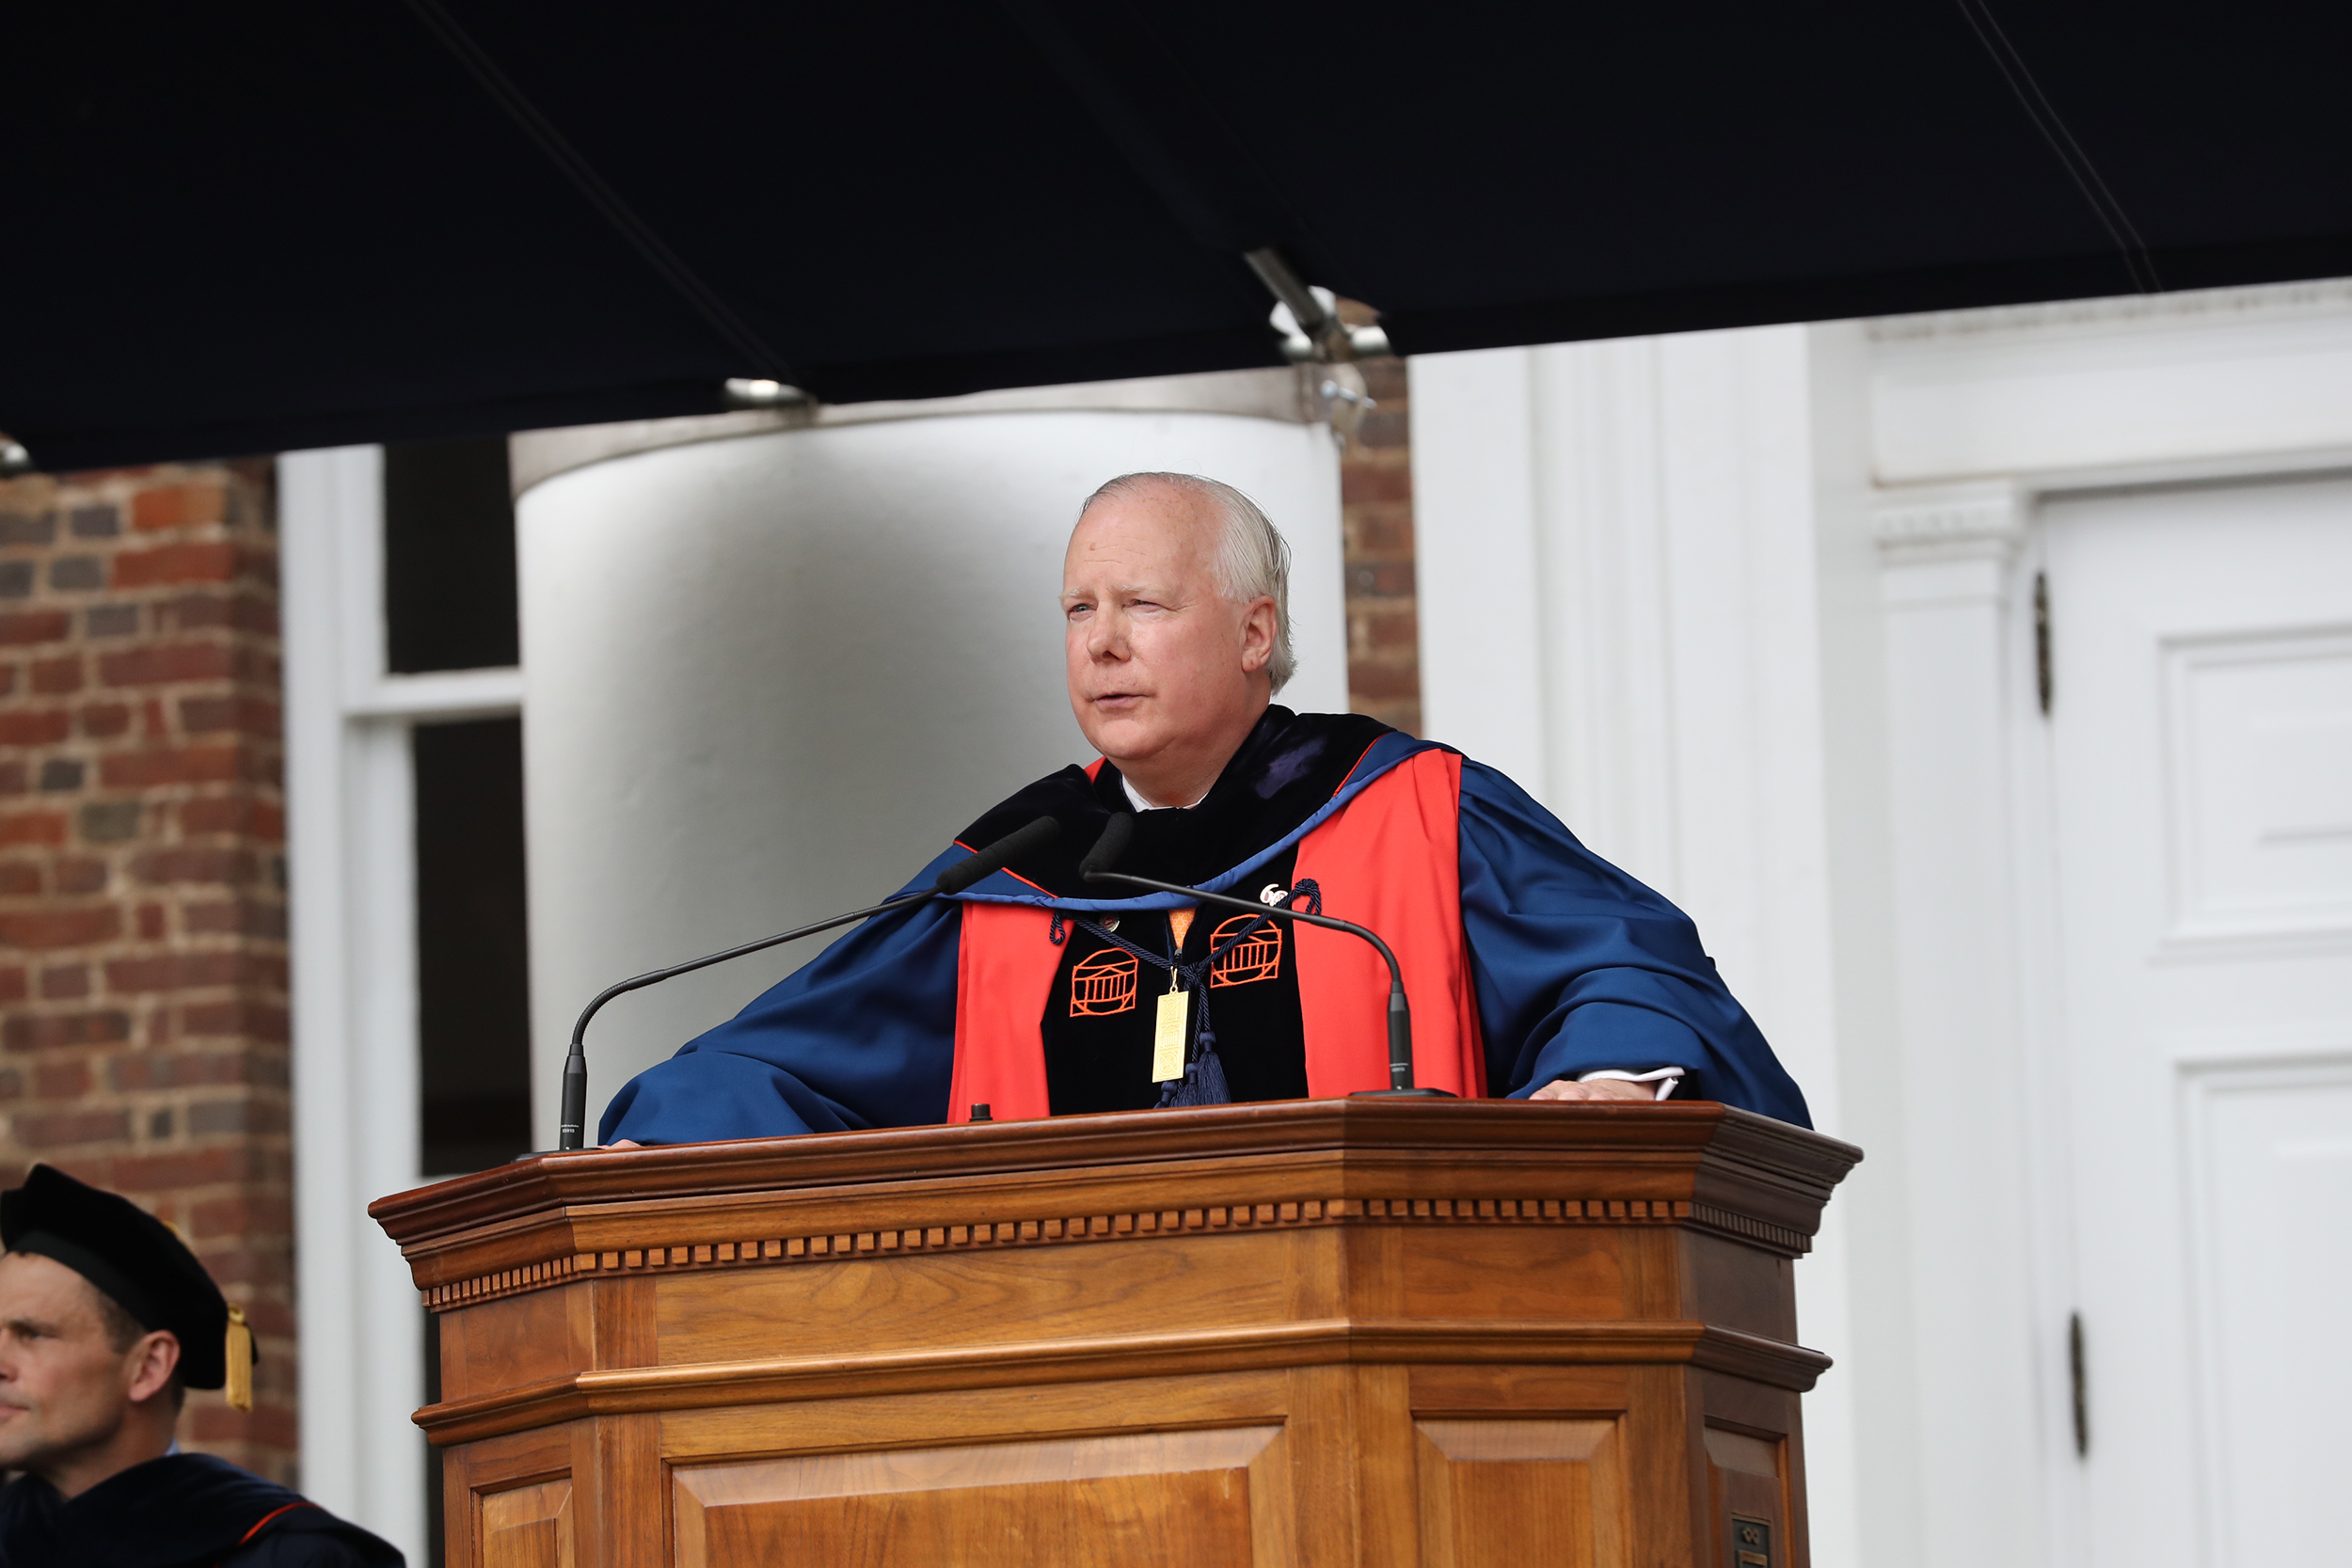 """UVA Rector Rusty Conner: """"We are at a point in this nation's history where we need to cast off the ways of the present. We can no longer afford to continue as we are if we are to achieve this nation's promise."""" (Photo by Dan Addison, UVA)"""